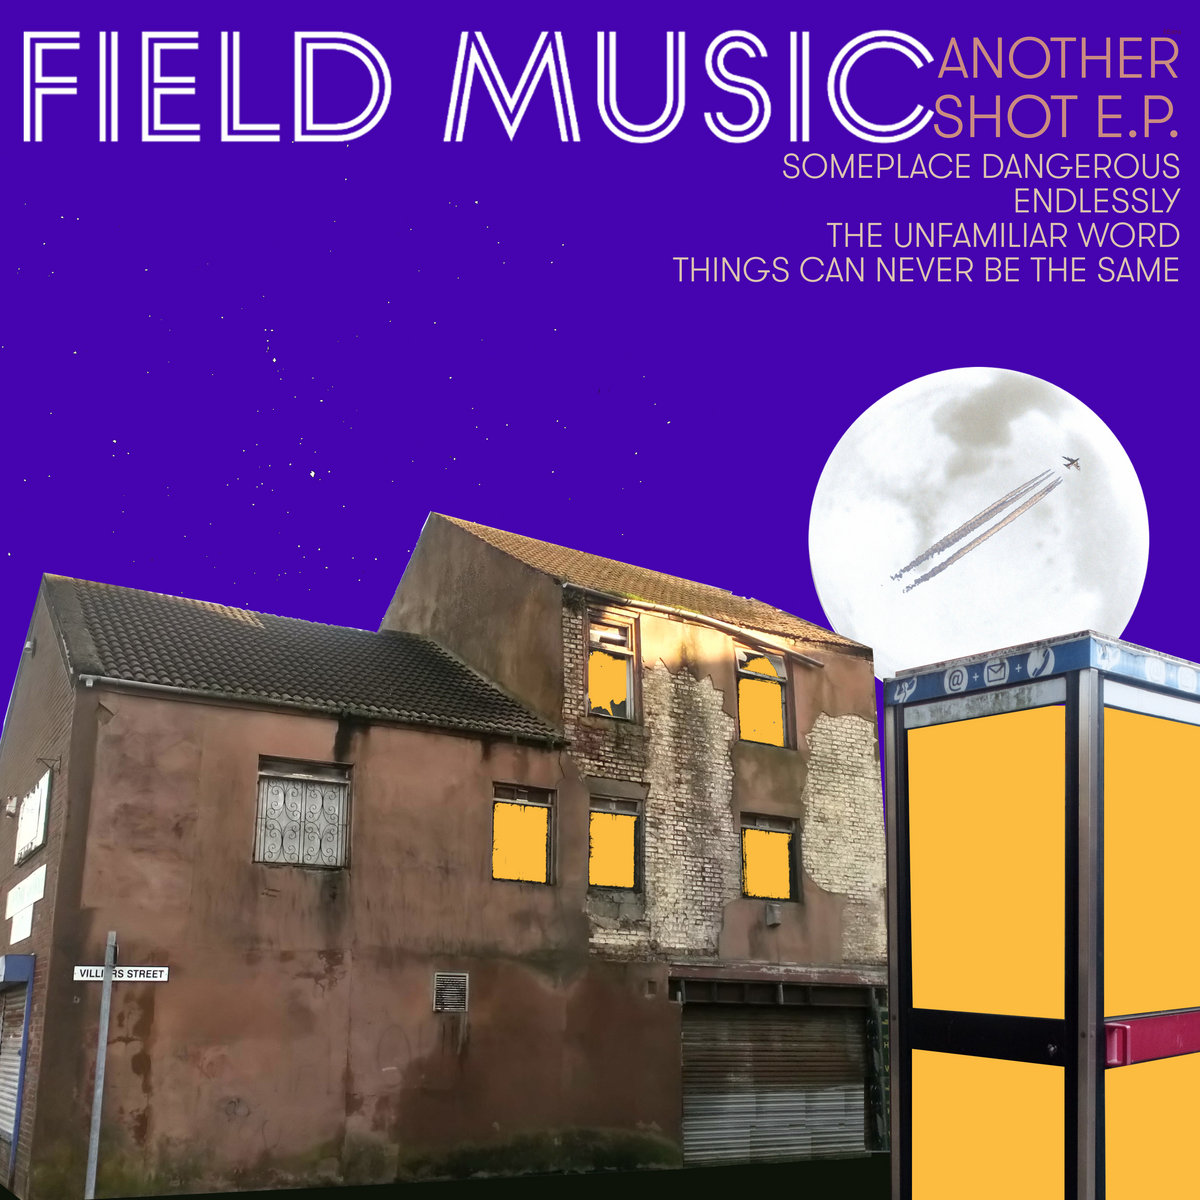 News – Field Music – Another Shot EP